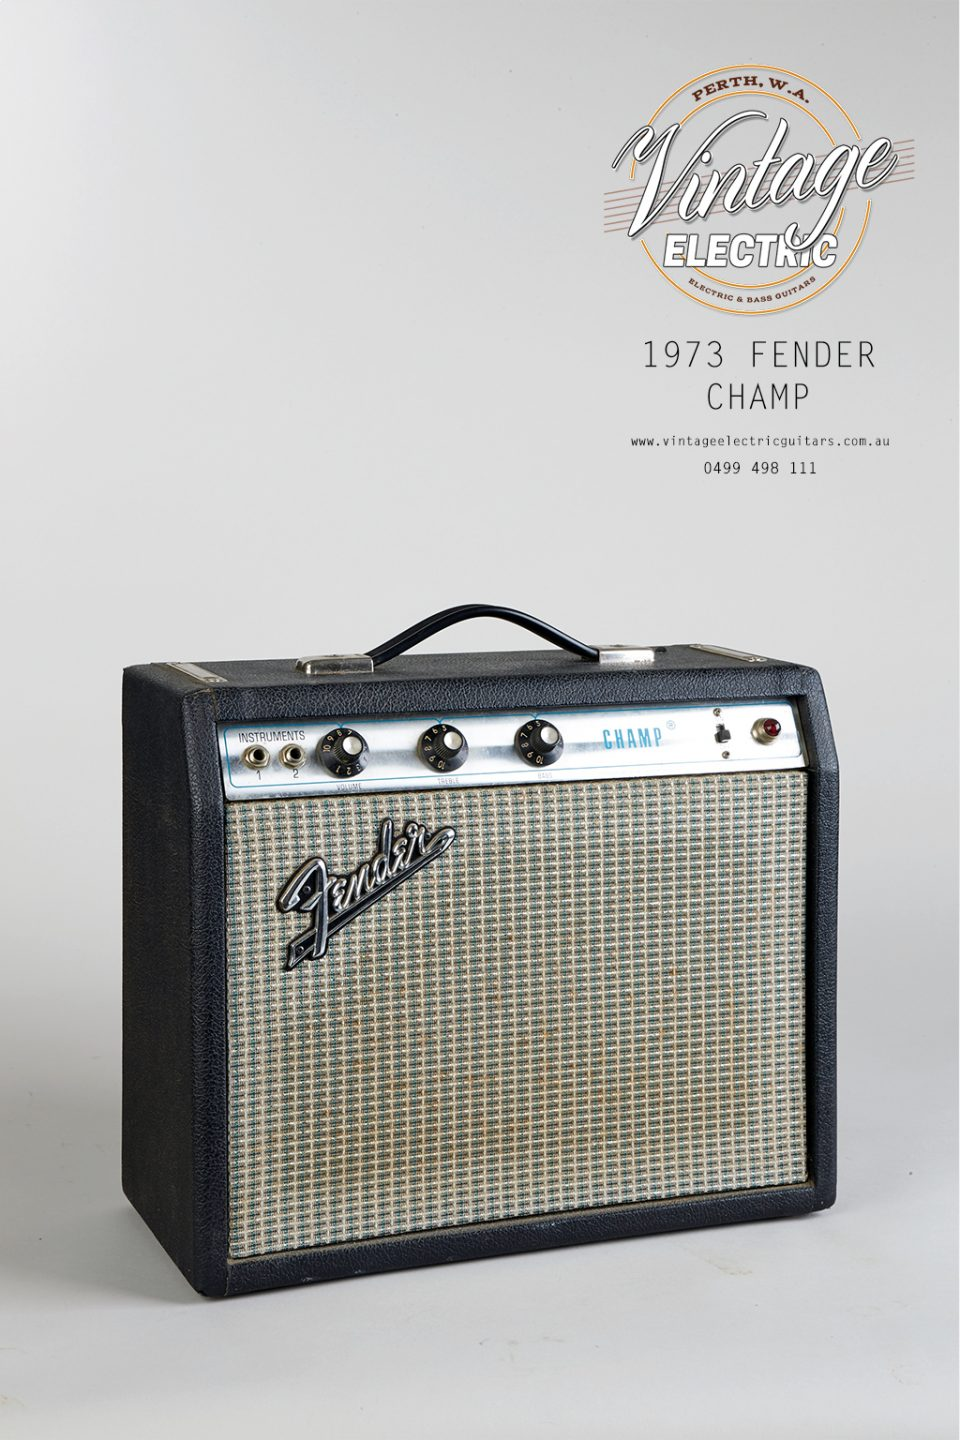 1973 Fender Champ Amplifier